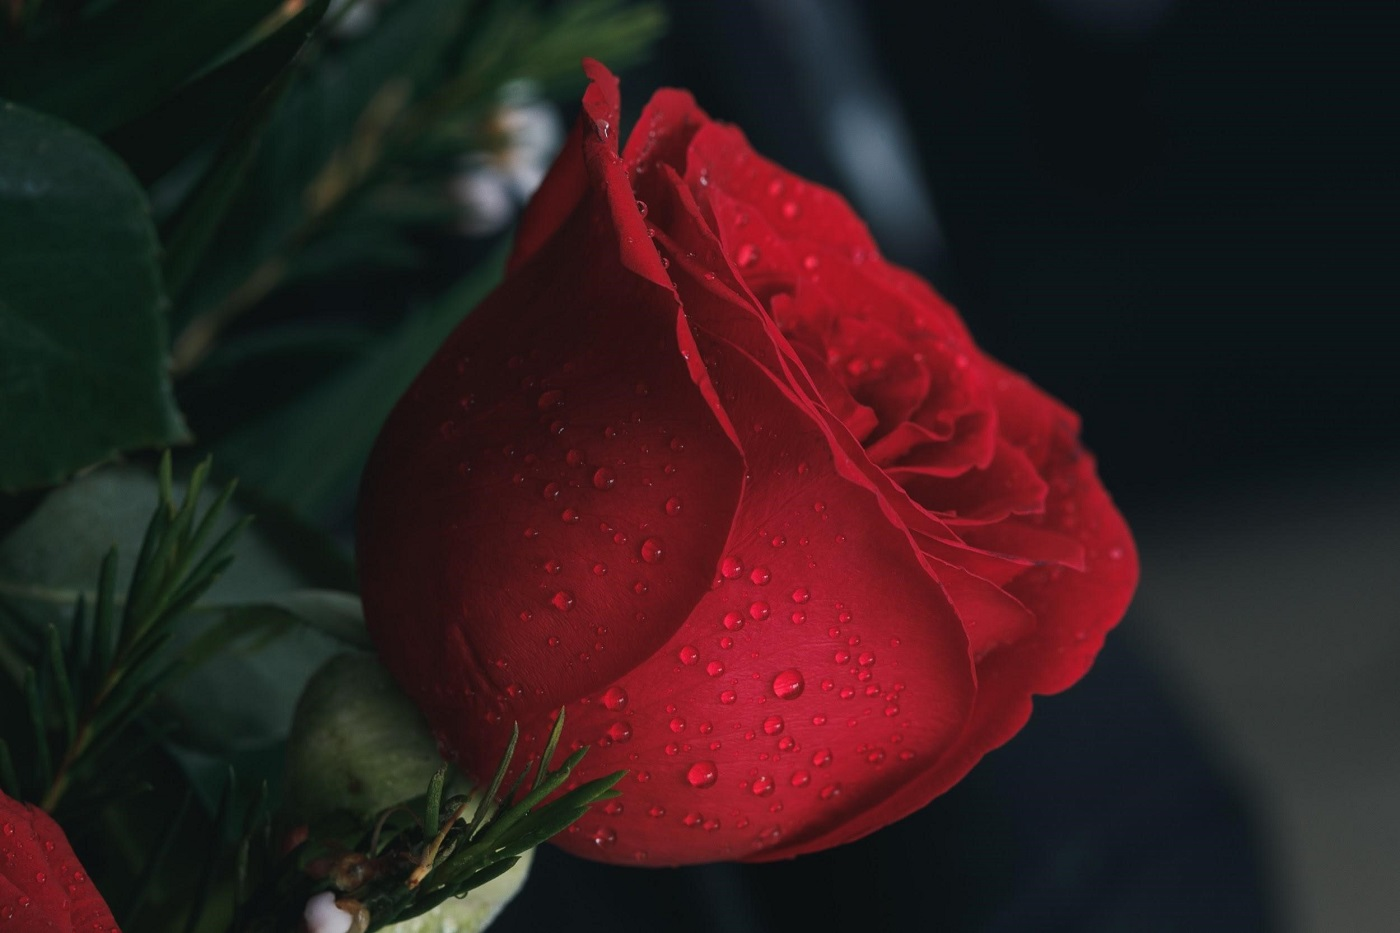 Red rose - A guide to choosing the right roses for any occasion